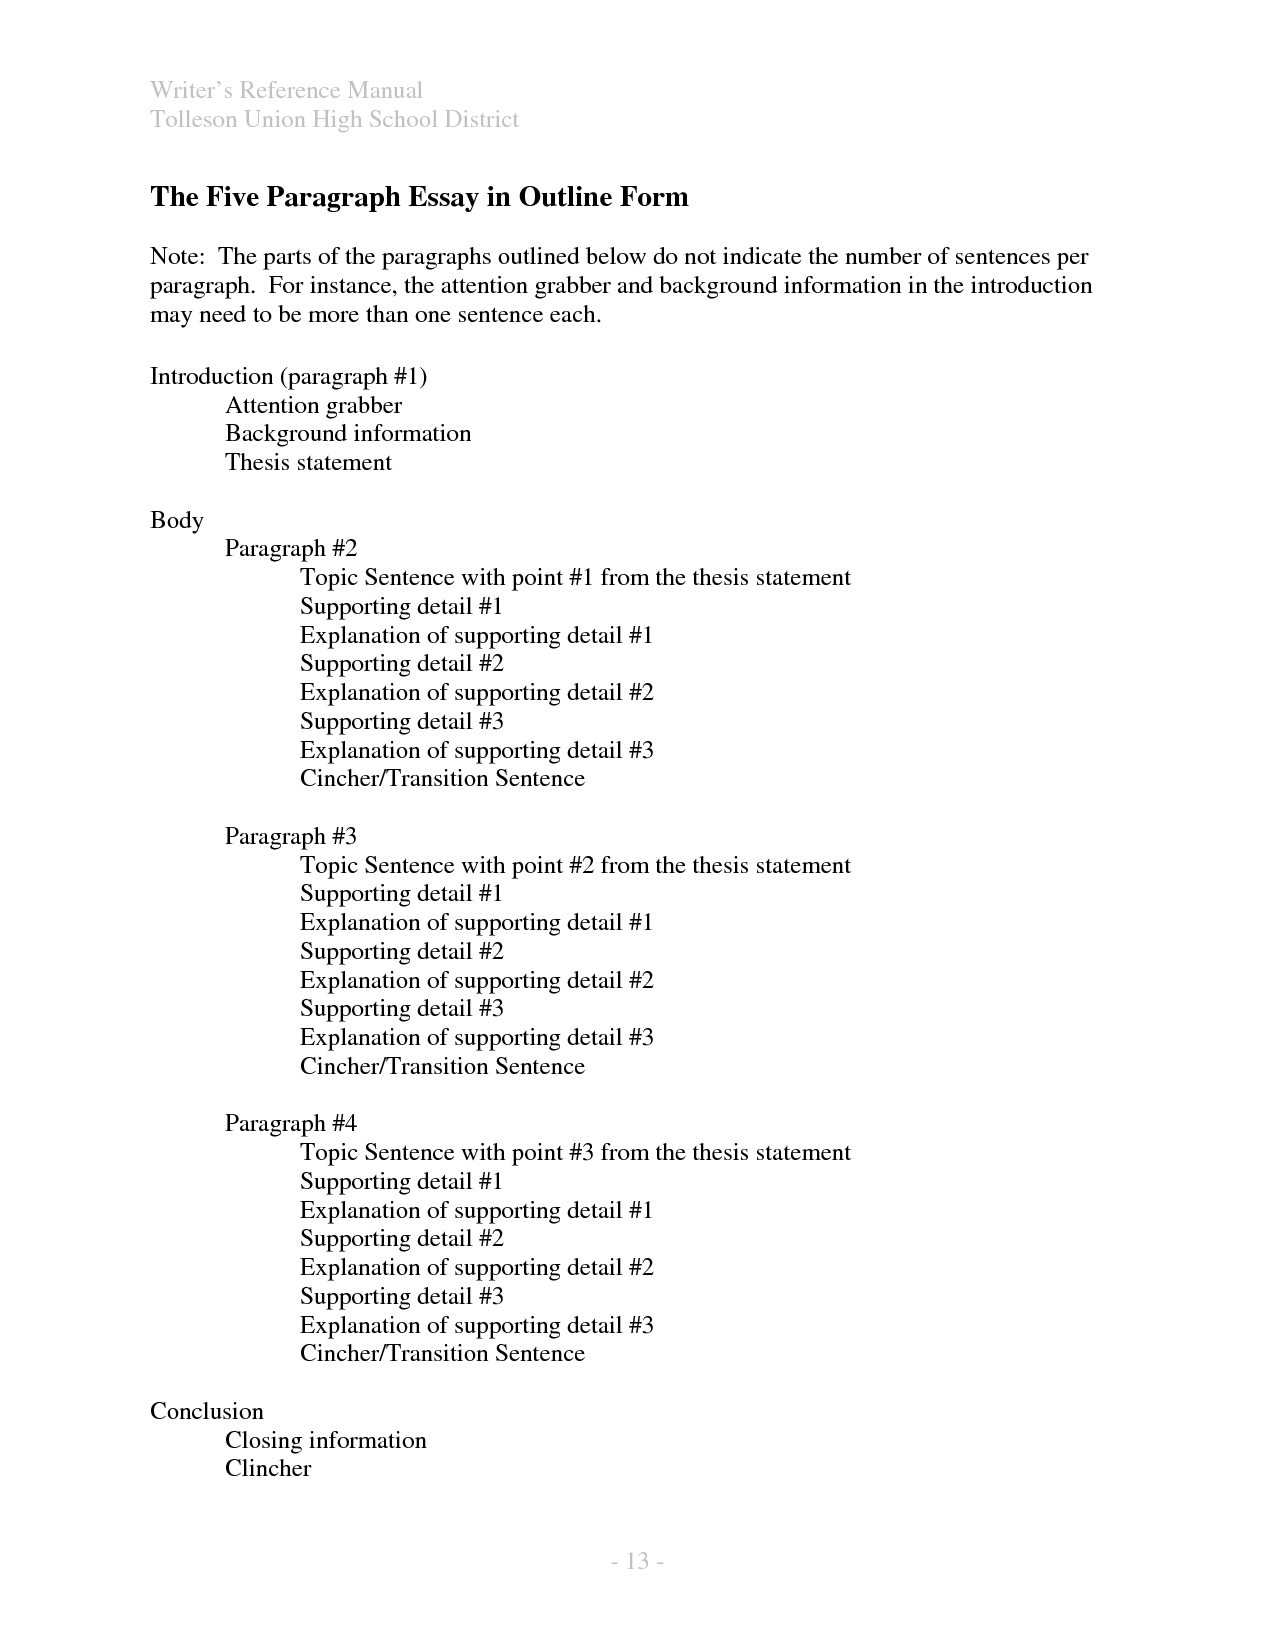 013 Paragraph Essay Example Persuasive Template High School Writings And Essays How To Write Format Onwe Bioinnovate Co Pertainin Body Outline Opinion Argumentative Exceptional 3 Graphic Organizer Examples Full